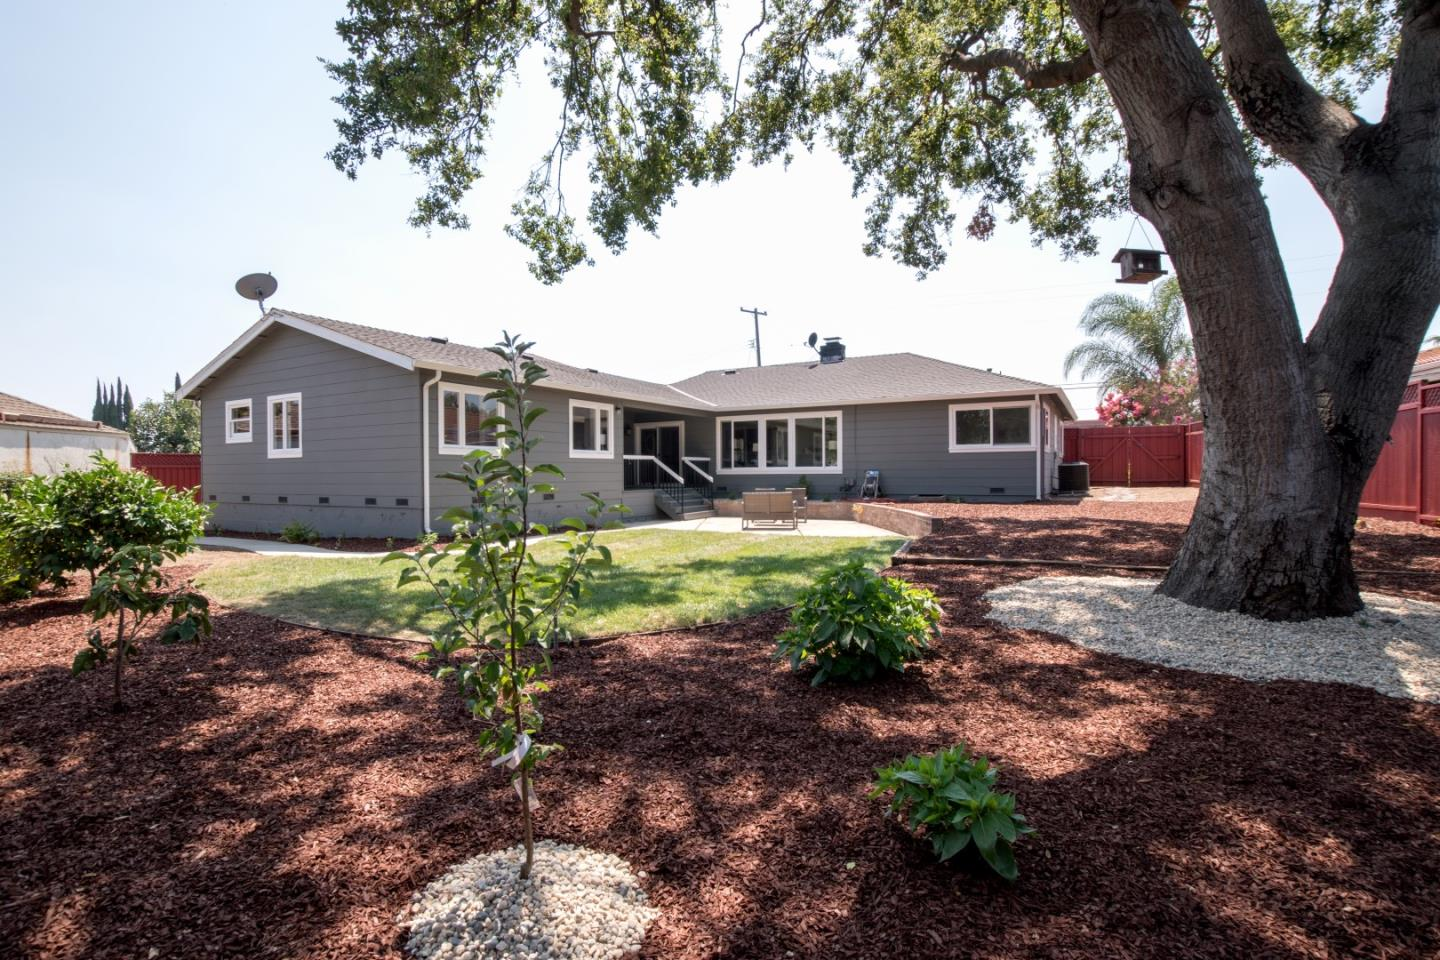 Additional photo for property listing at 510 Parkmoor Avenue  San Jose, California 95128 Estados Unidos